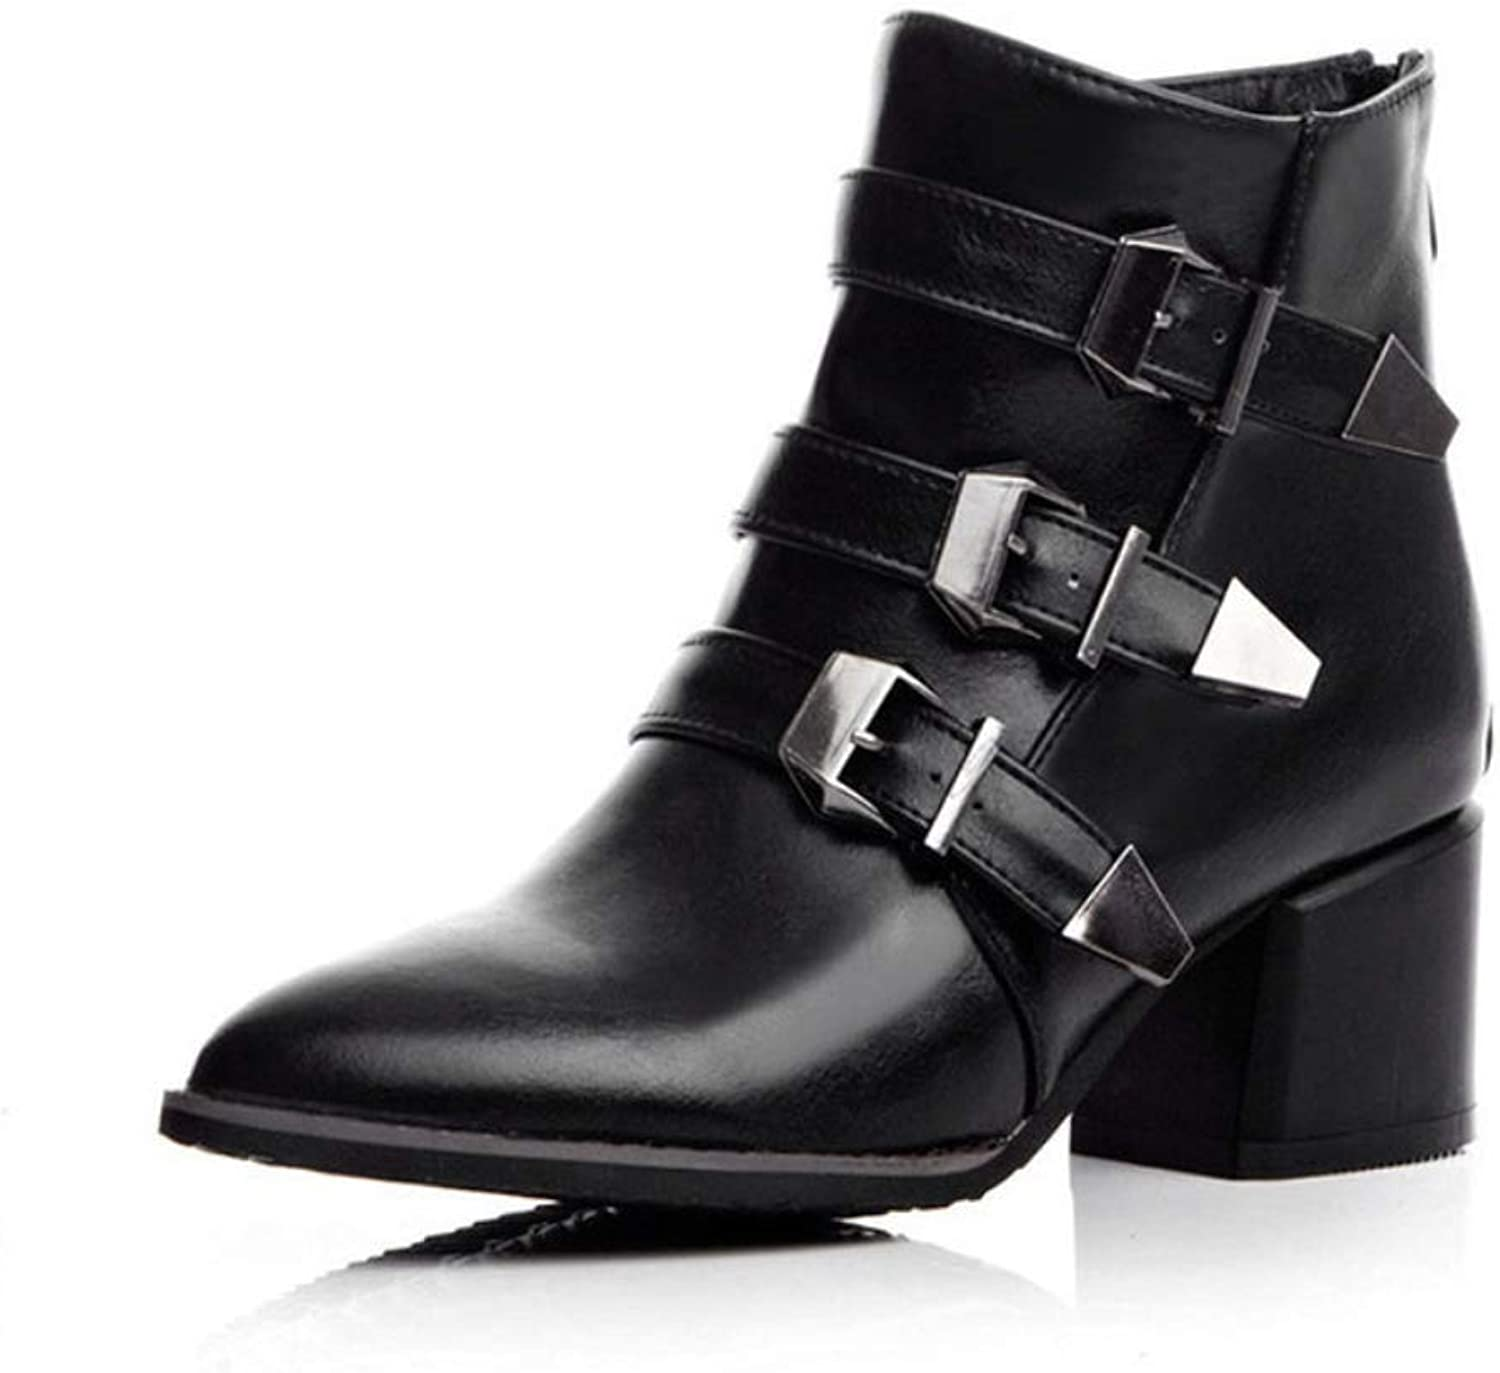 Women's Boots Buckle Chunky Heel Booties Fall Winter Fashion Boots Ankle Boots